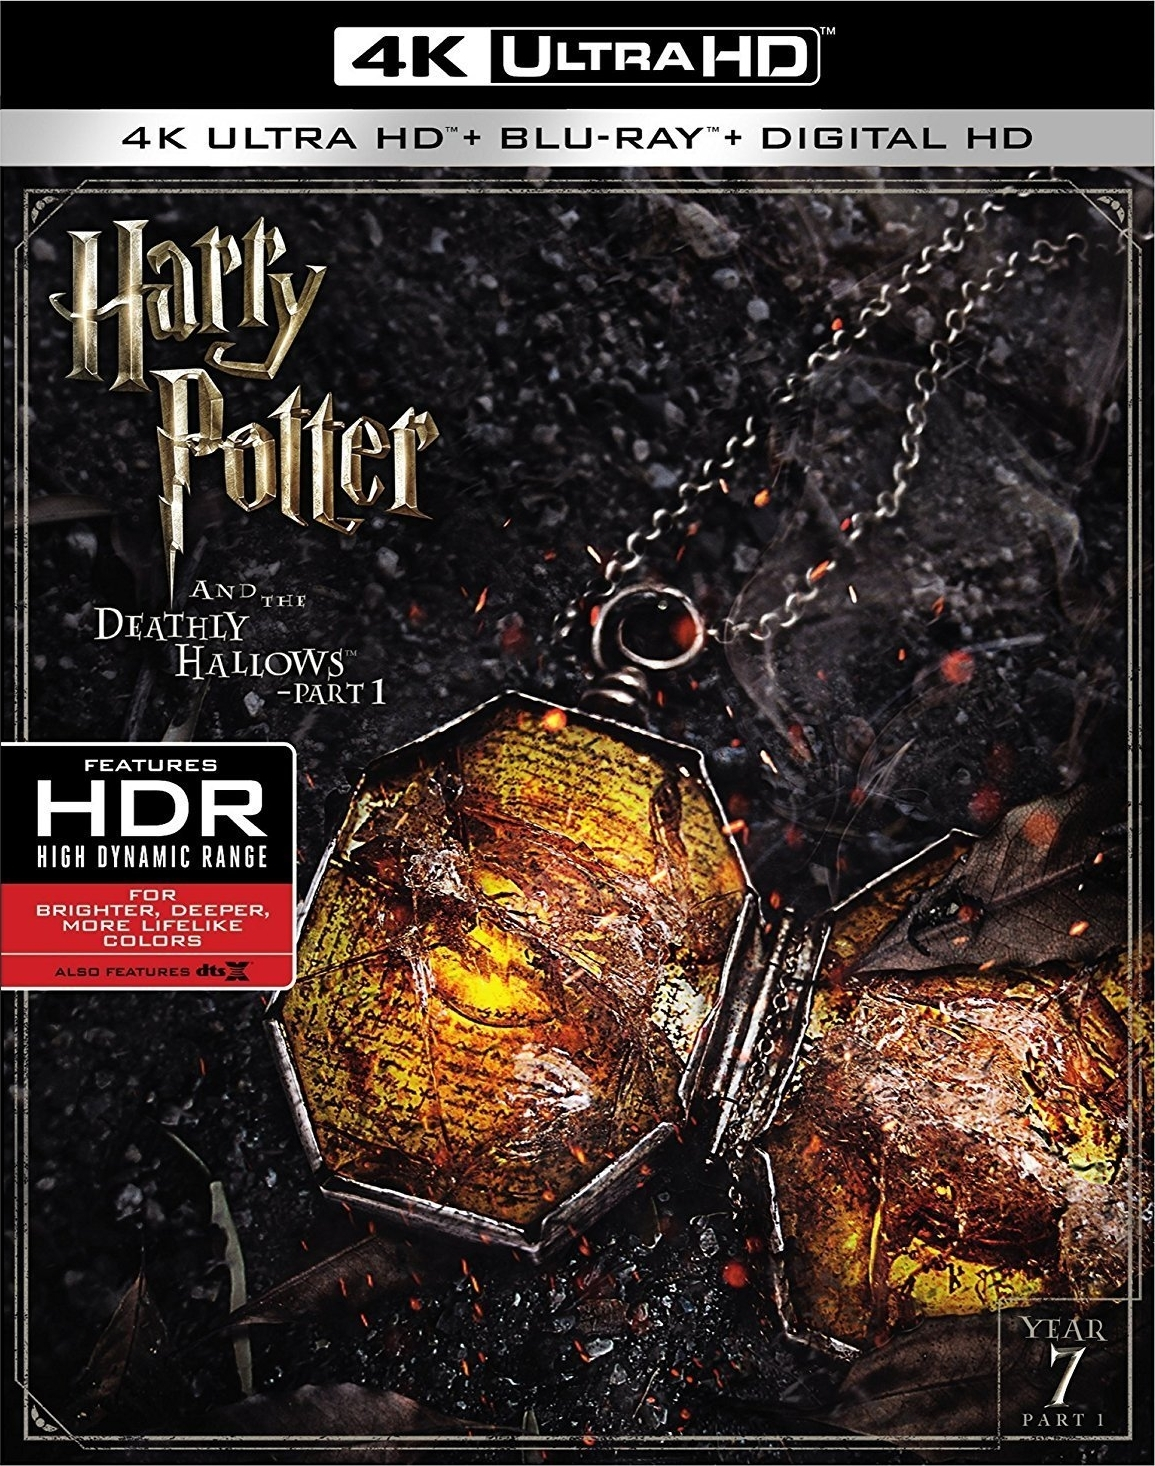 Harry Potter and the Deathly Hallows: Part 1 4K (2010) Ultra HD Blu-ray